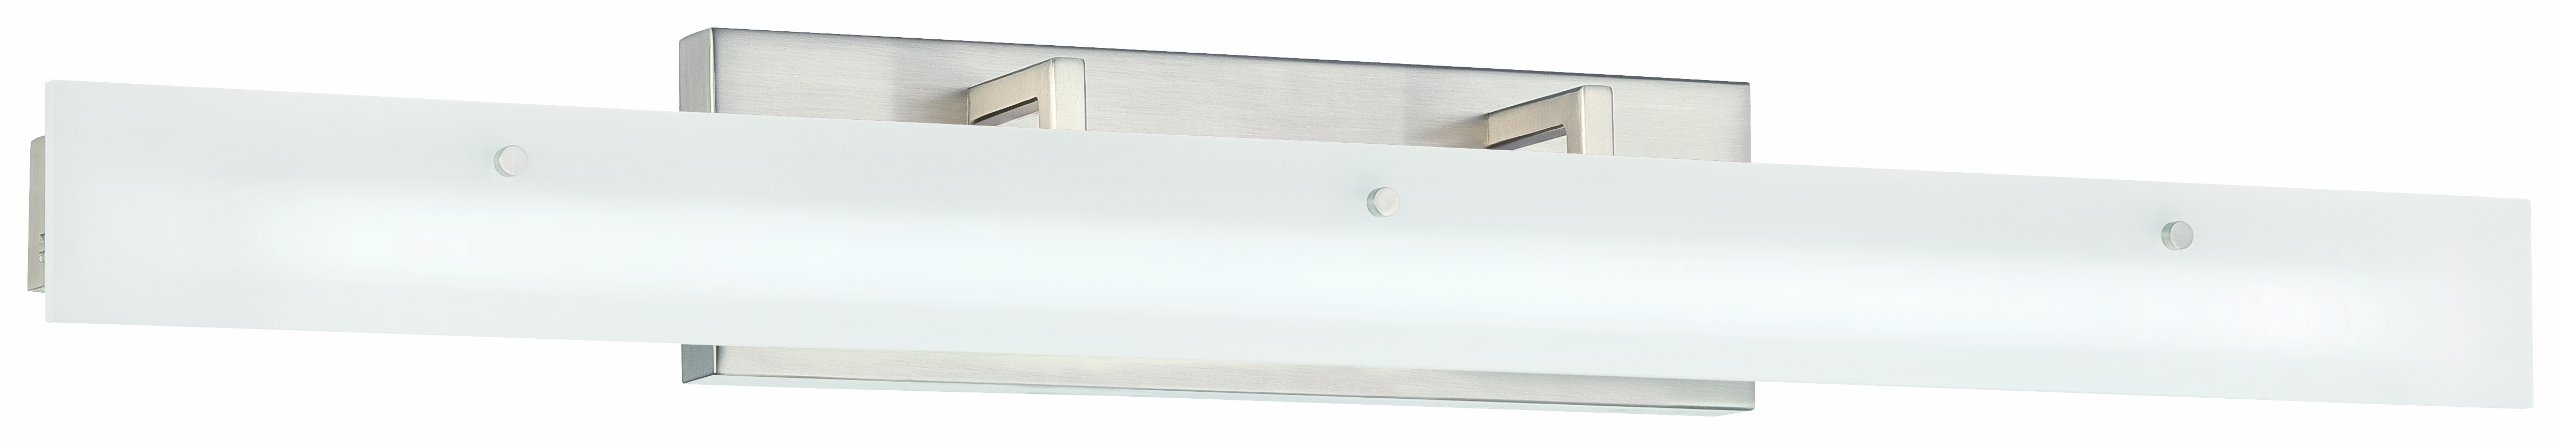 Philips Forecast 190200836 Axo Bath Light, Satin Nickel